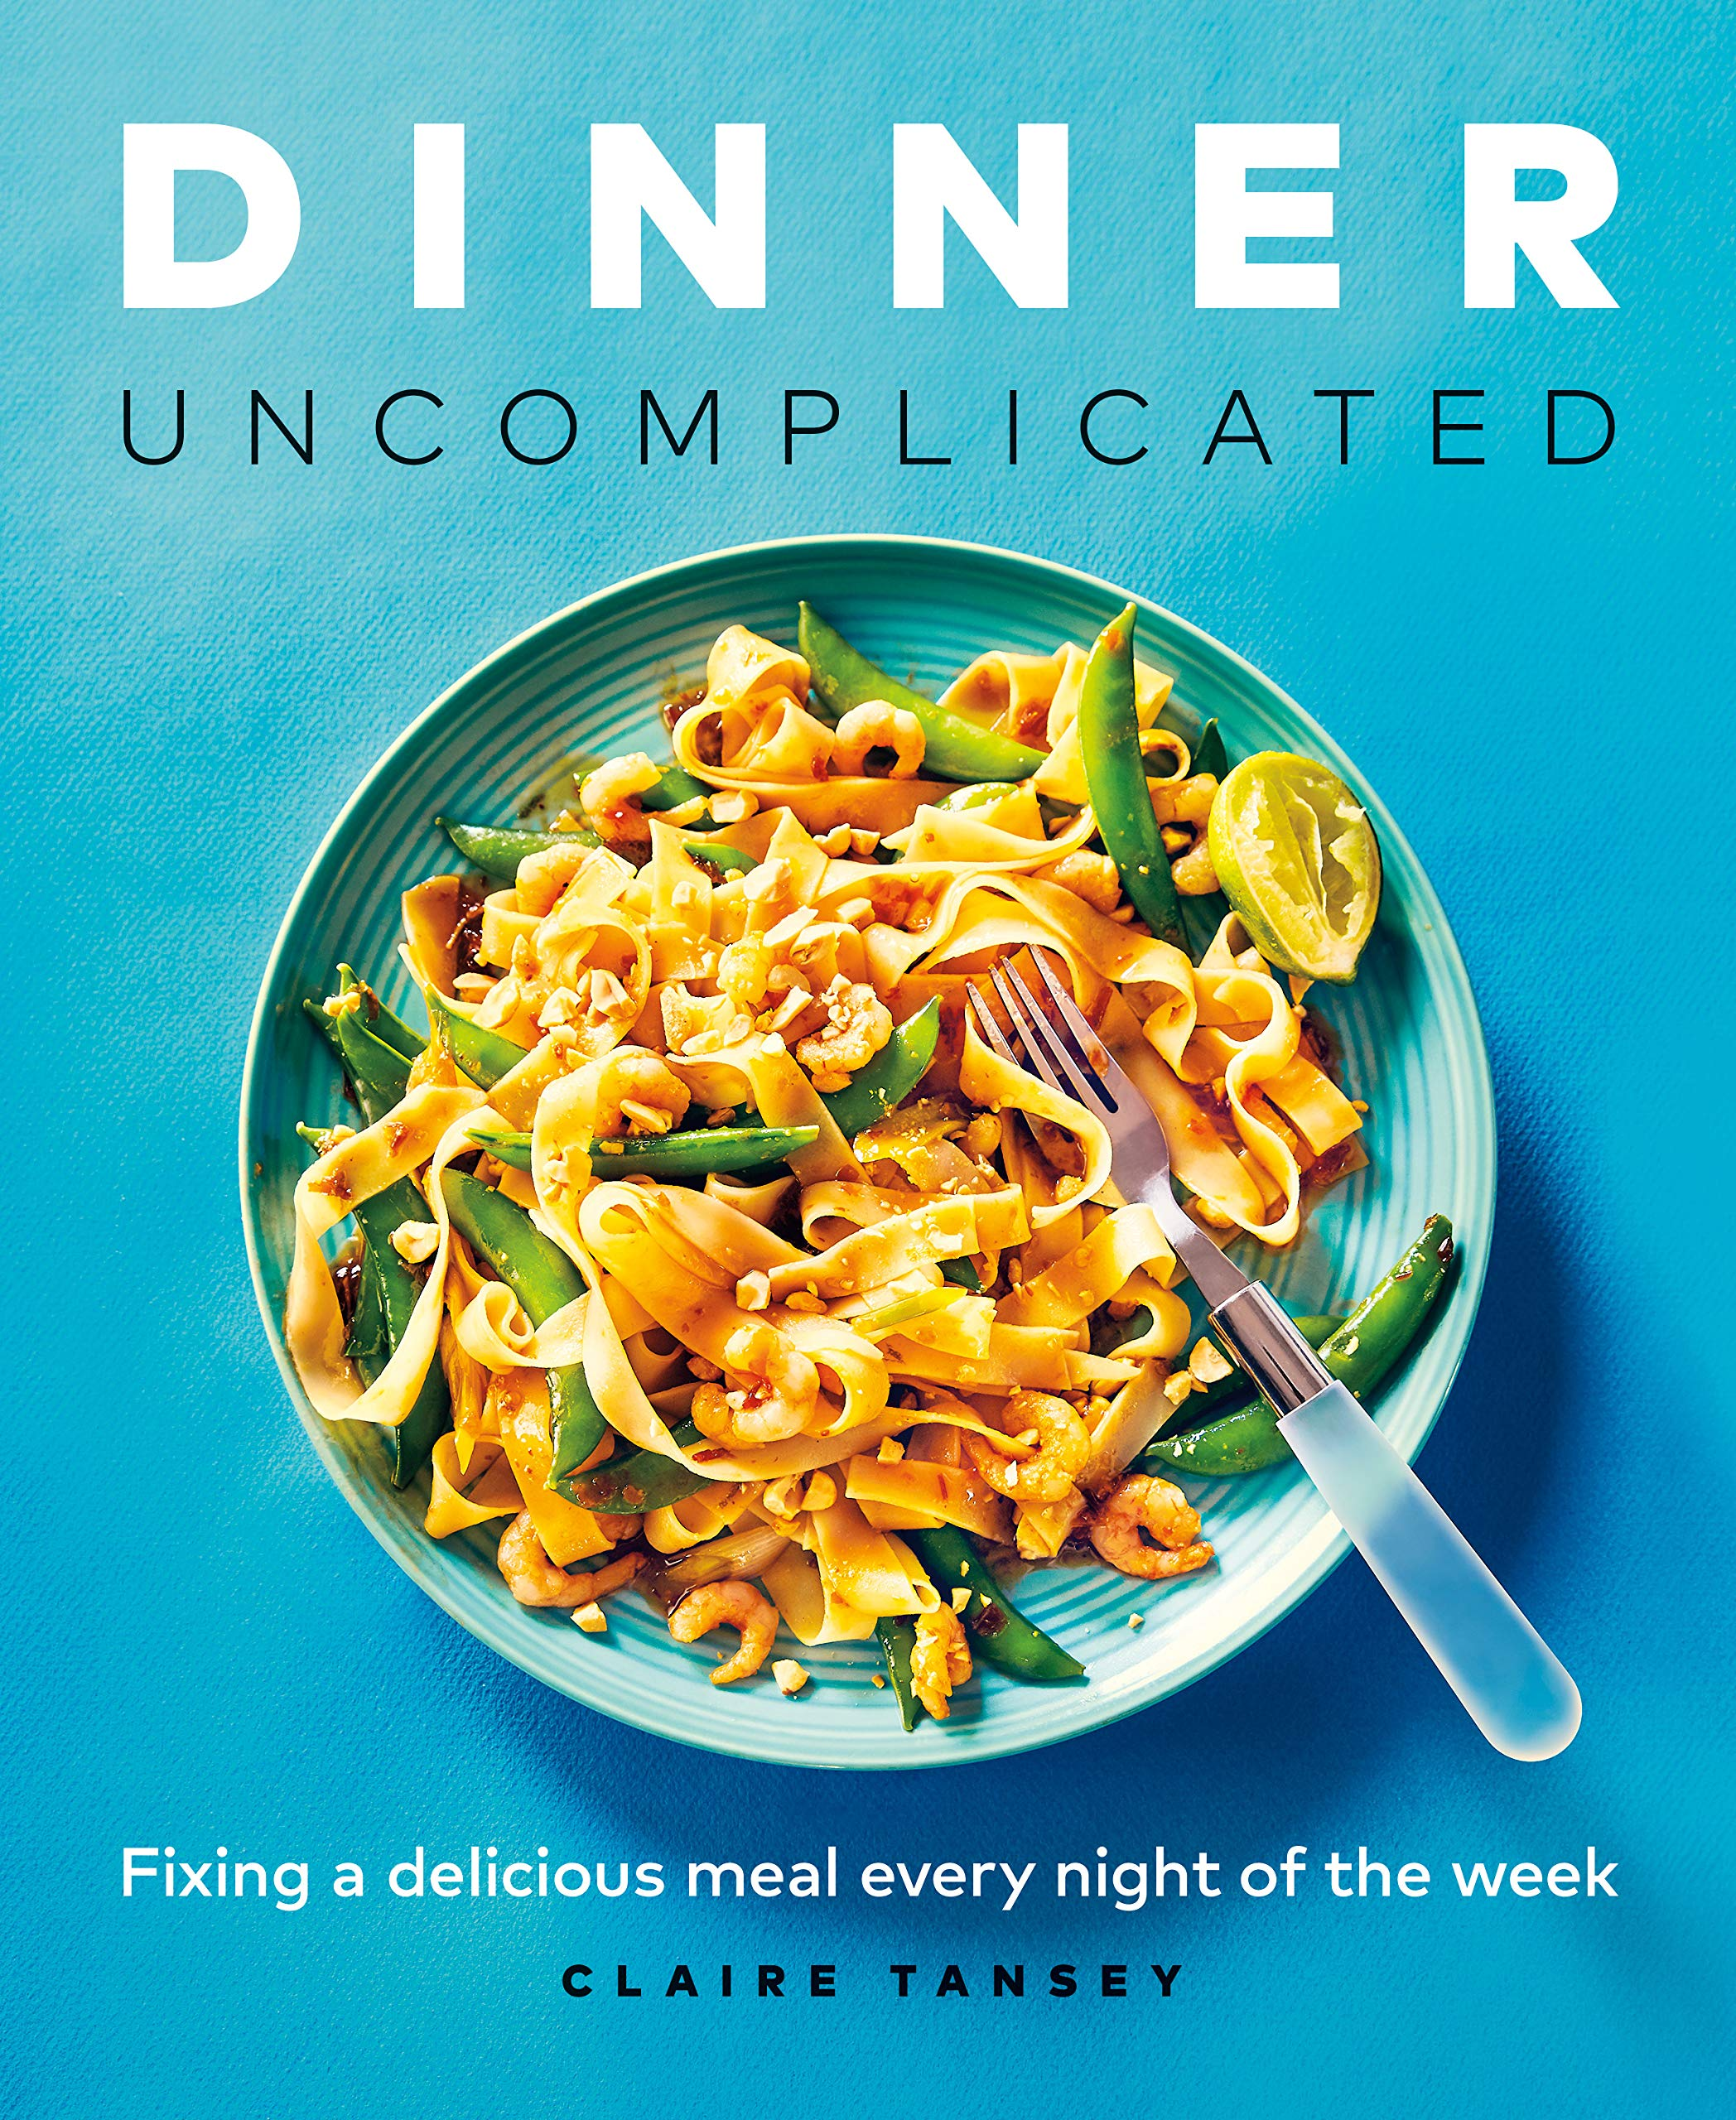 Dinner, Uncomplicated: Fixing a Delicious Meal Every Night of the Week by Claire Tansey